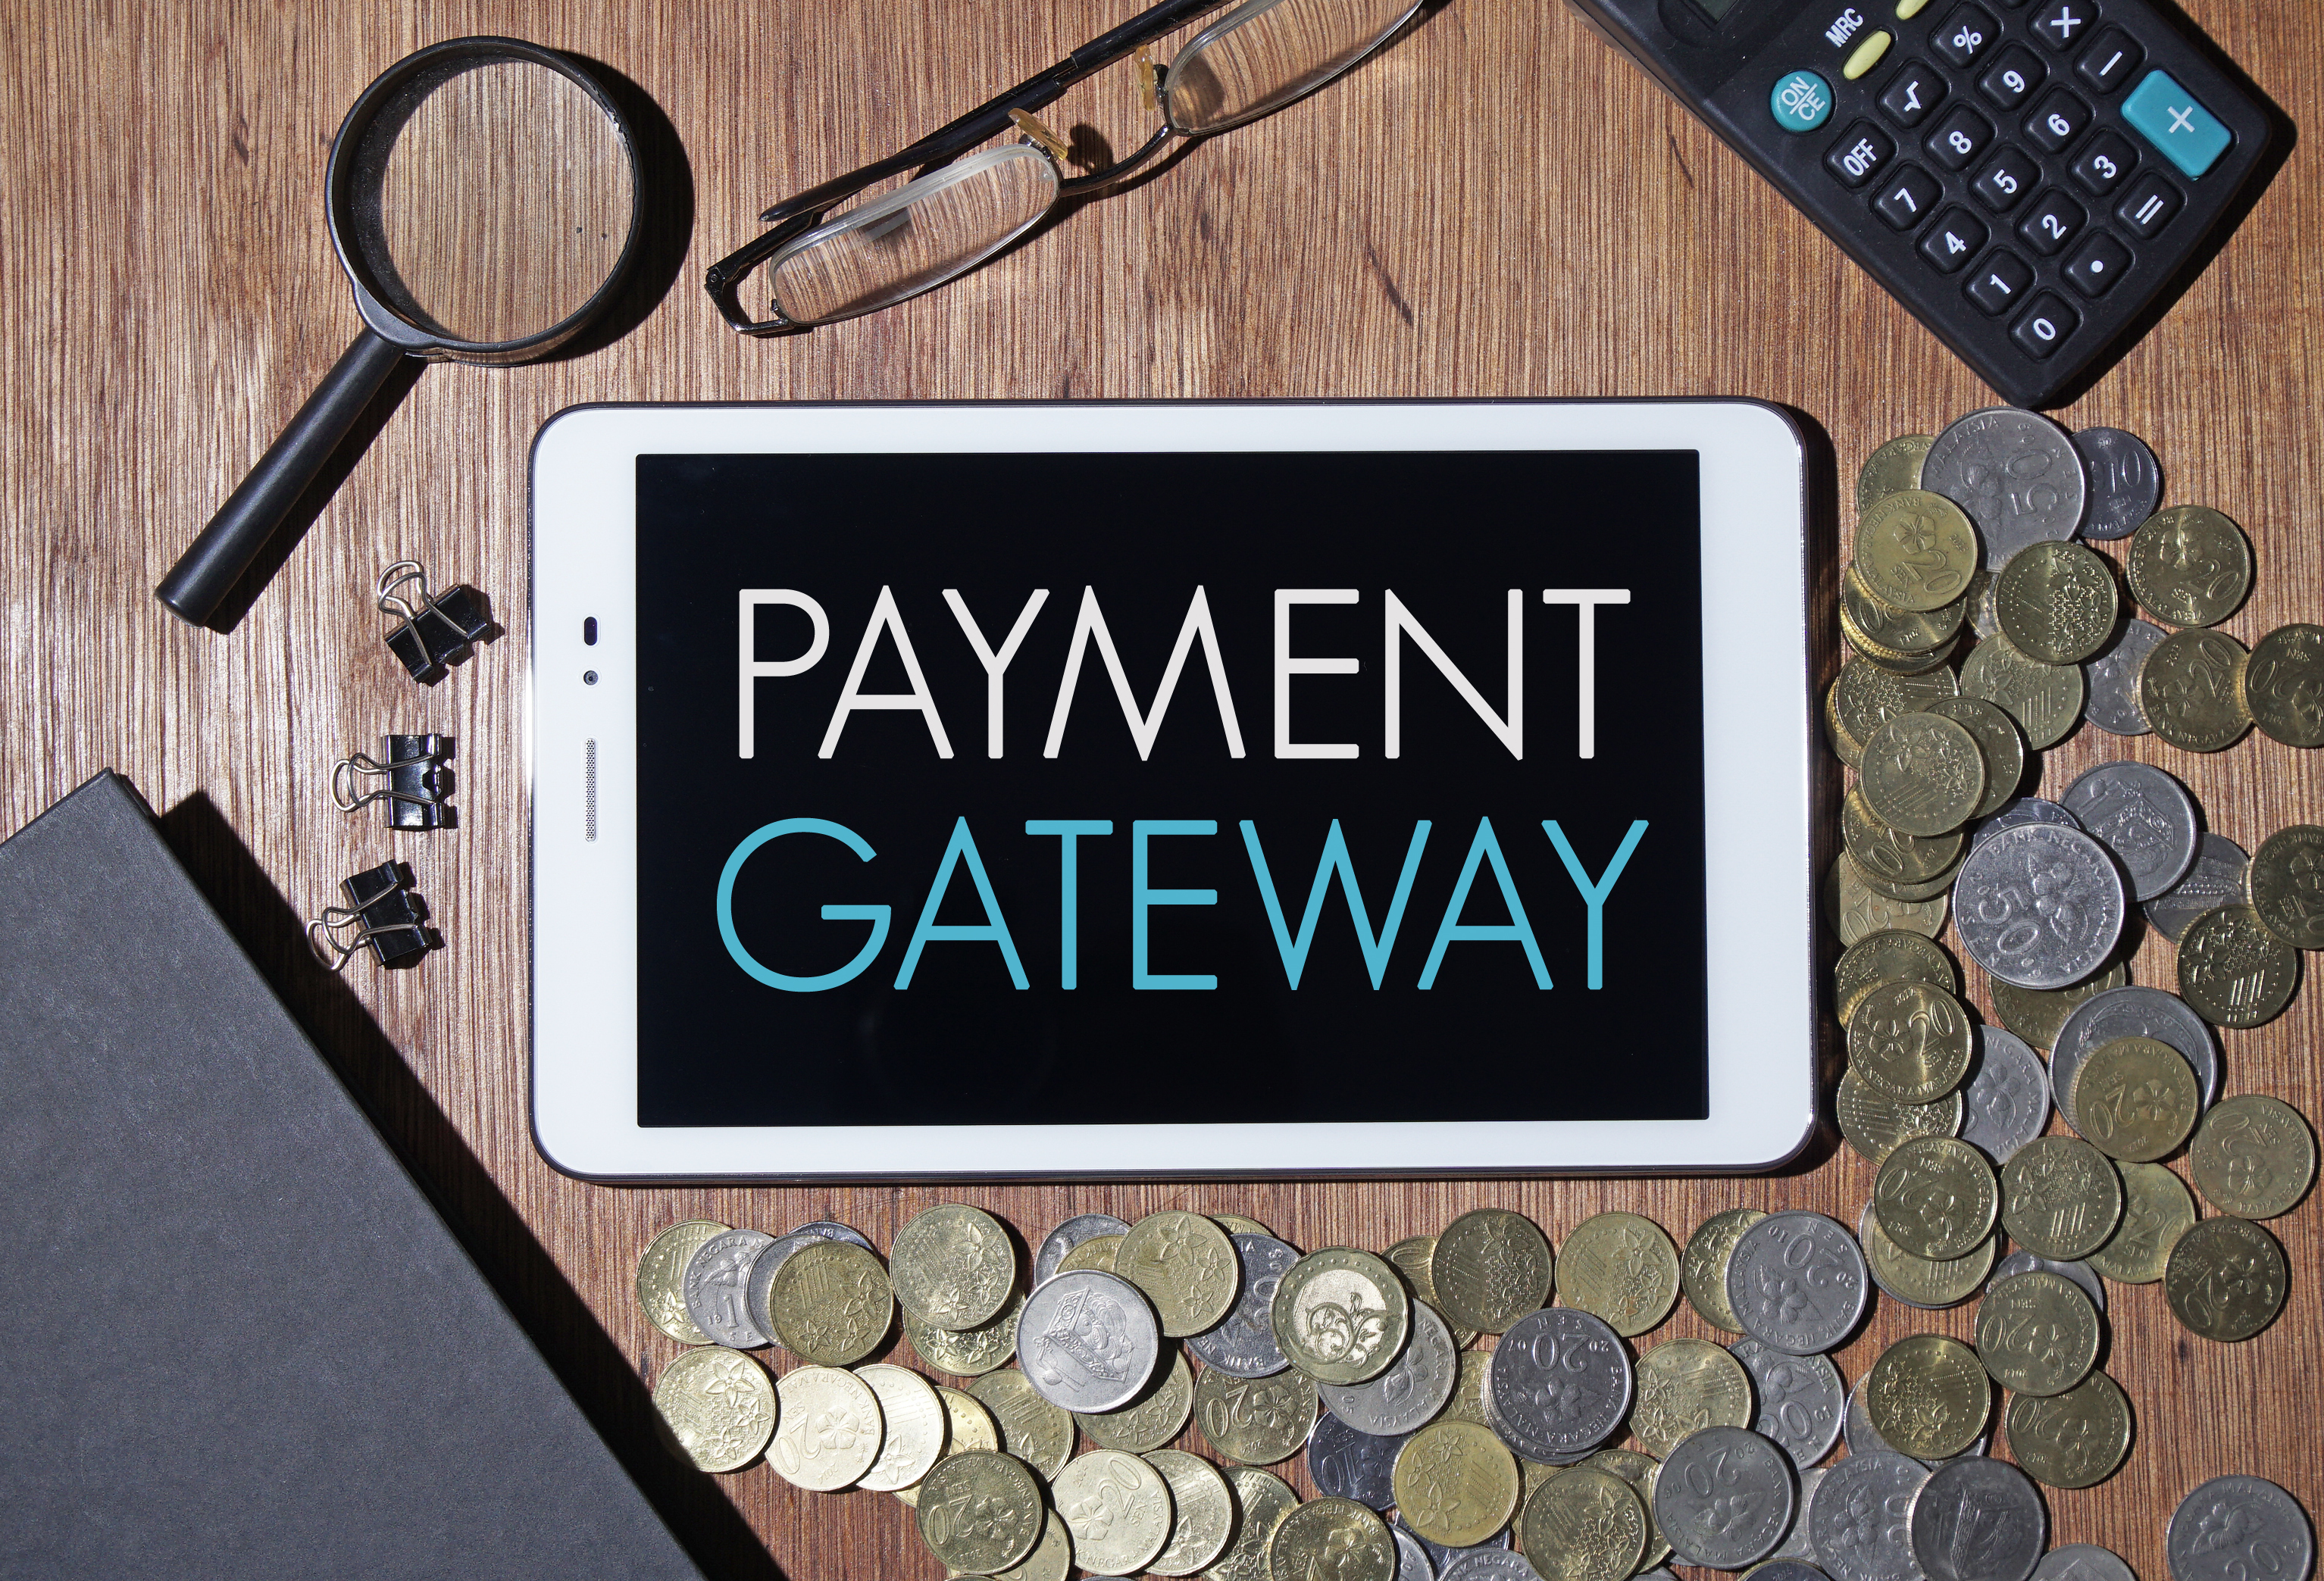 9 Things to Look For In a Payment Gateway